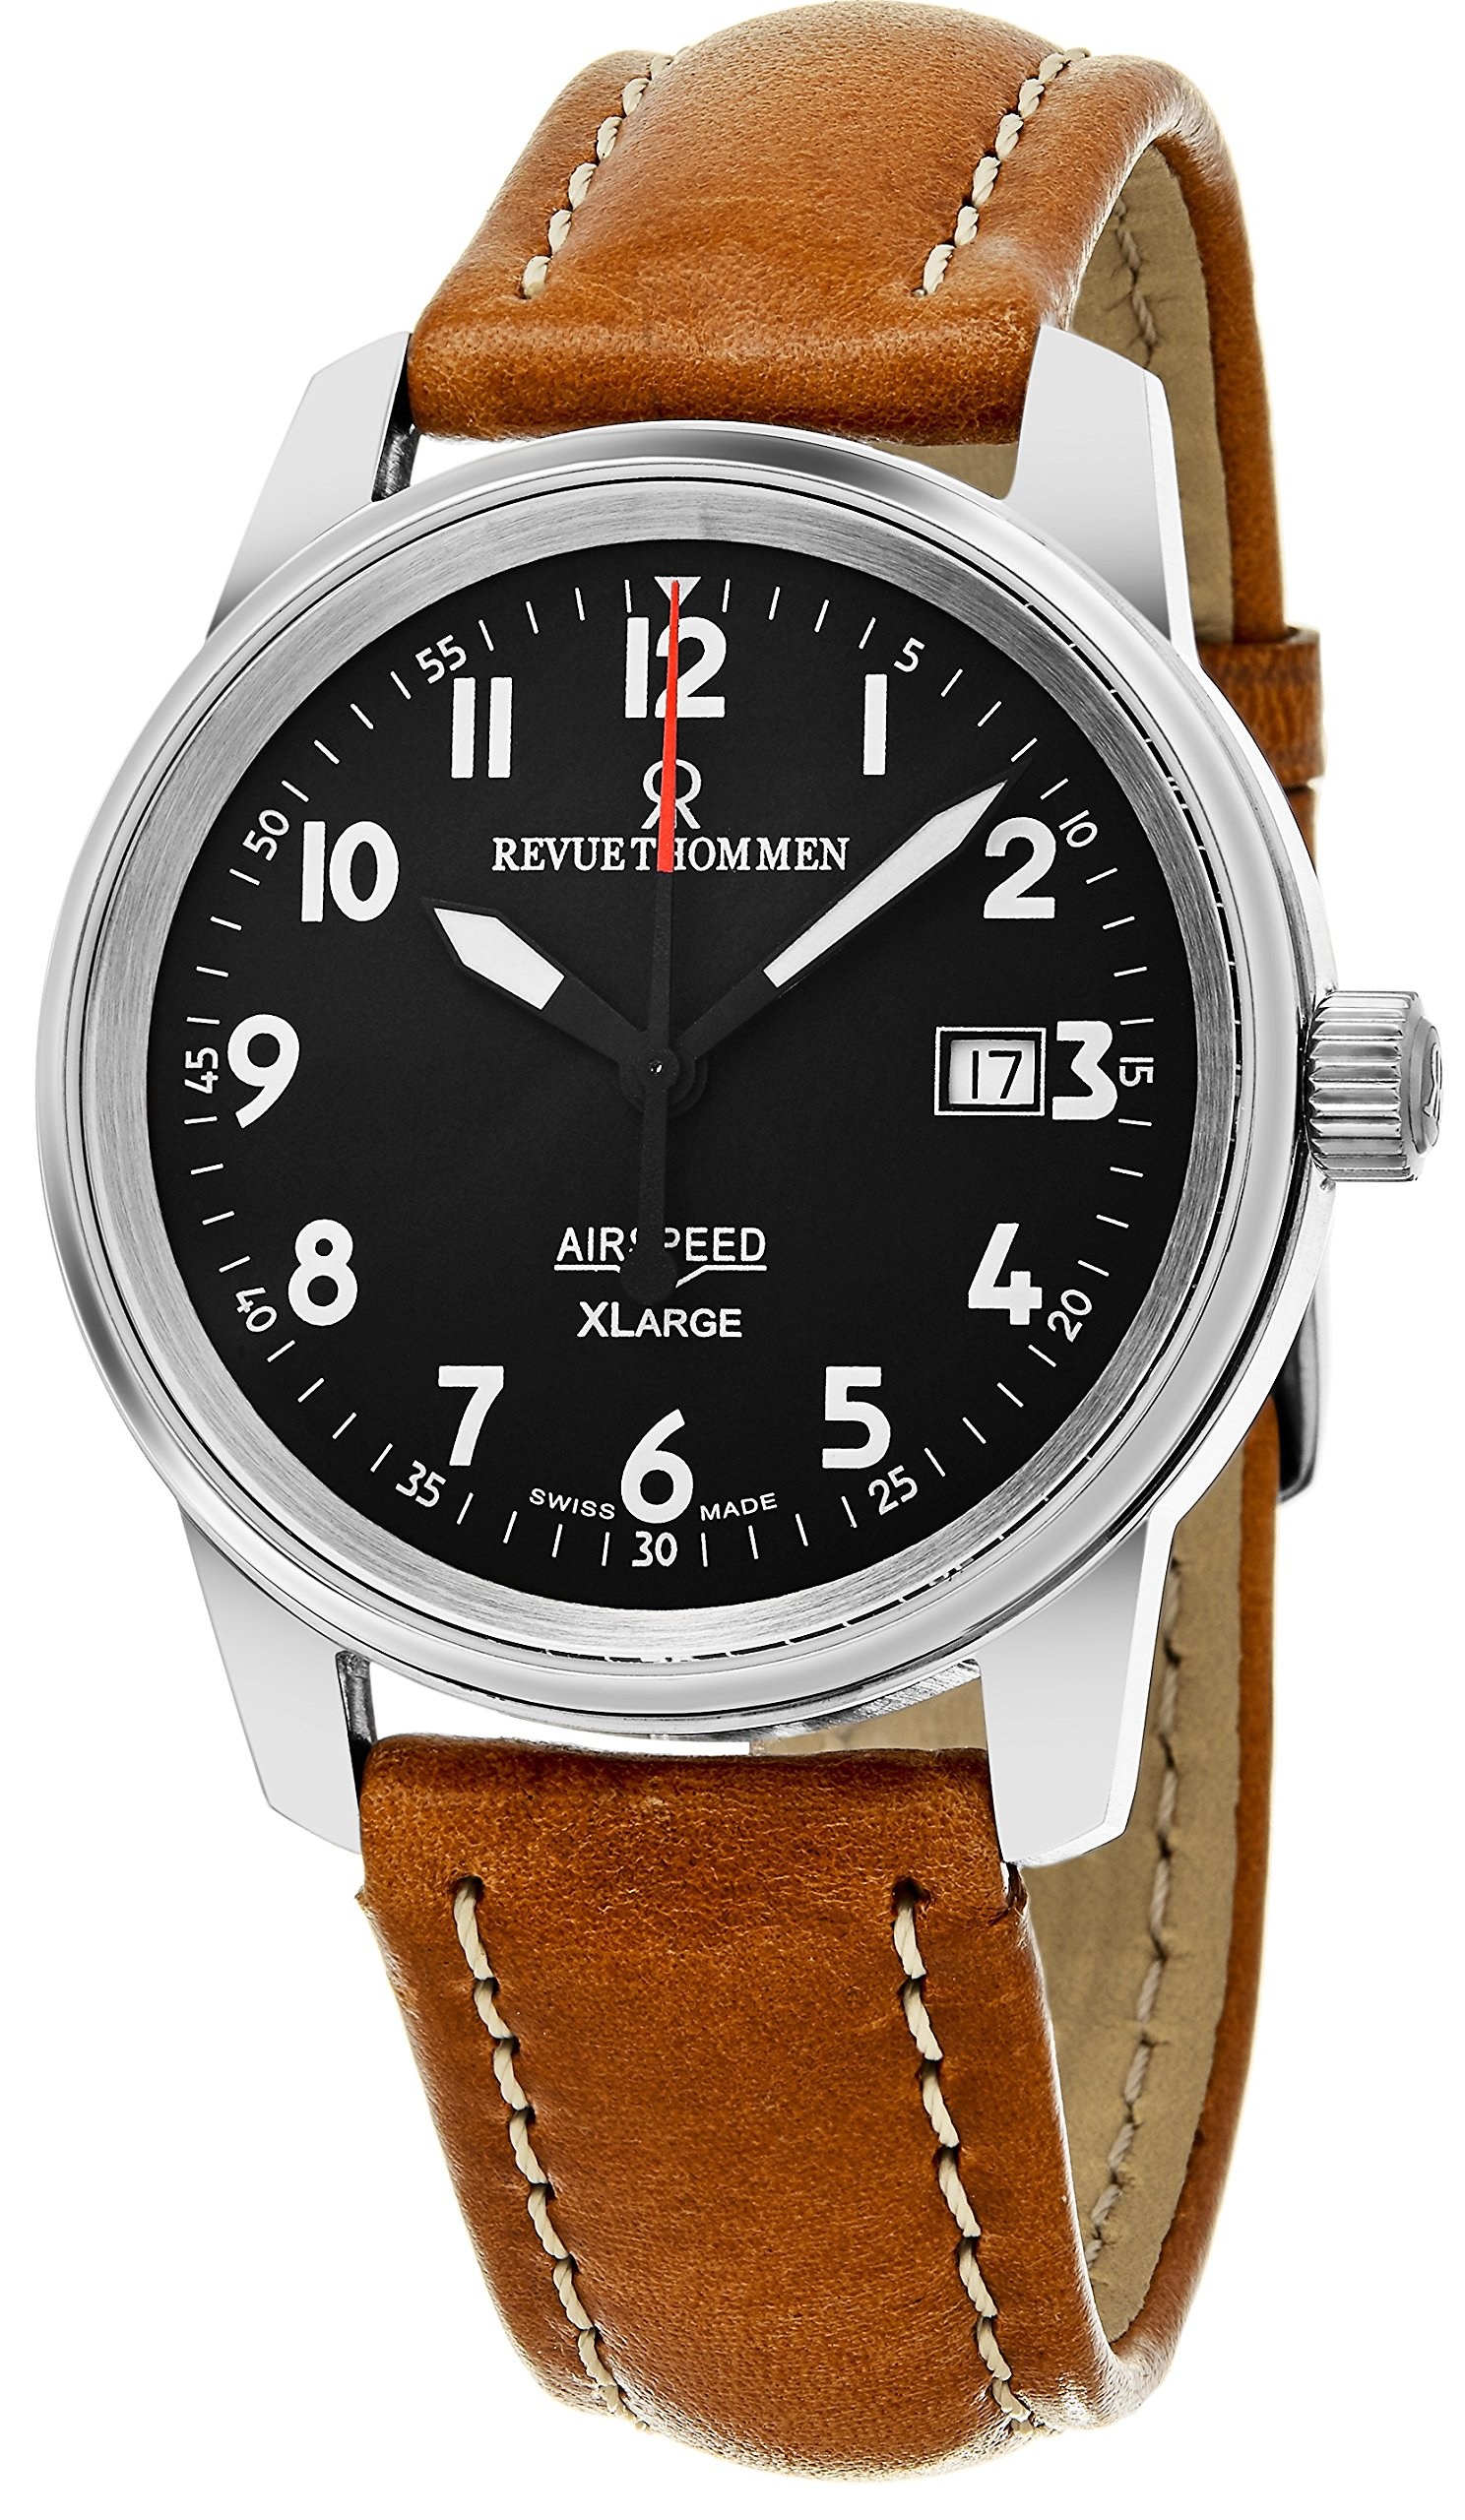 Revue Thommen 'Air Speed XL' Black Dial Brown Leather Strap Swiss Mechanical Watch 16052.2537